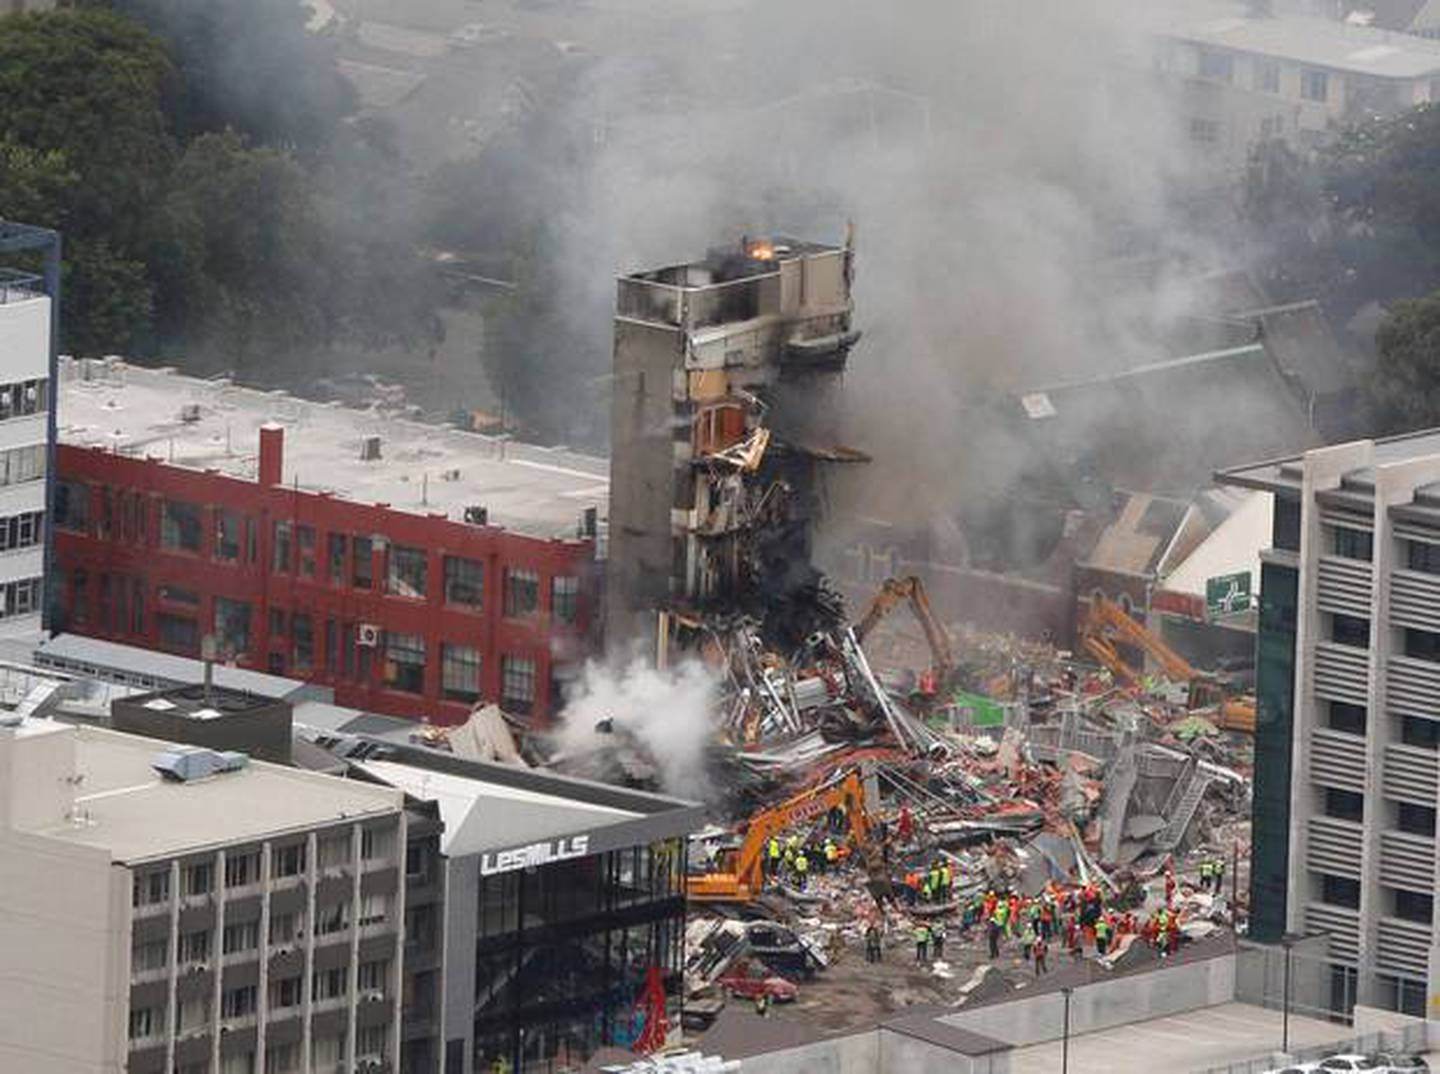 The February 22, 2011 earthquake in Christchurch caused mass destruction and loss of 185 lives....